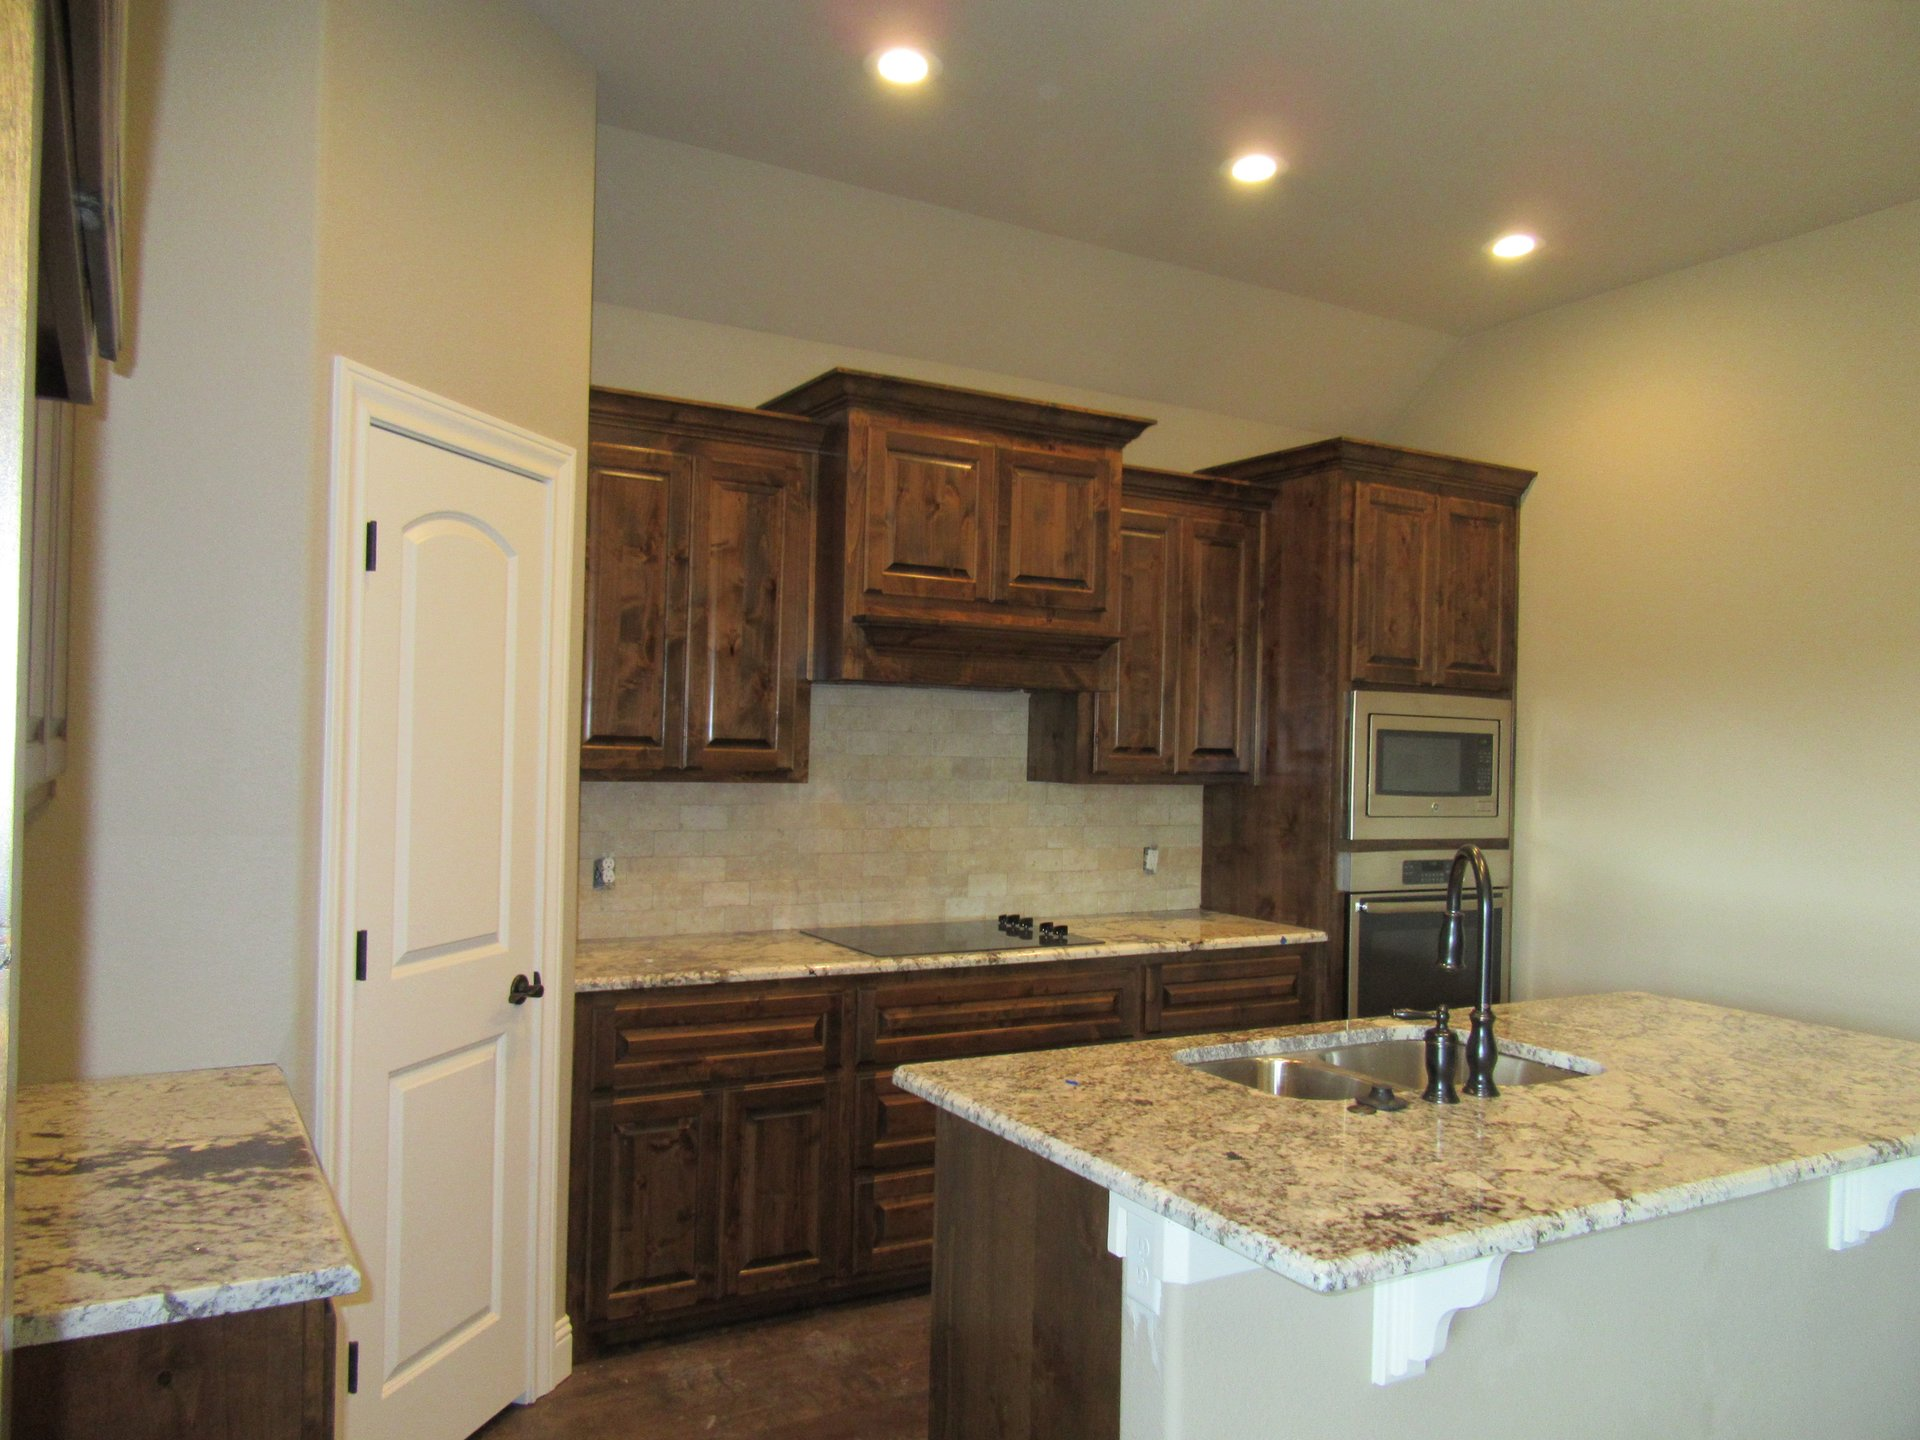 kitchen in new home built by Cornerstone Custom Homes